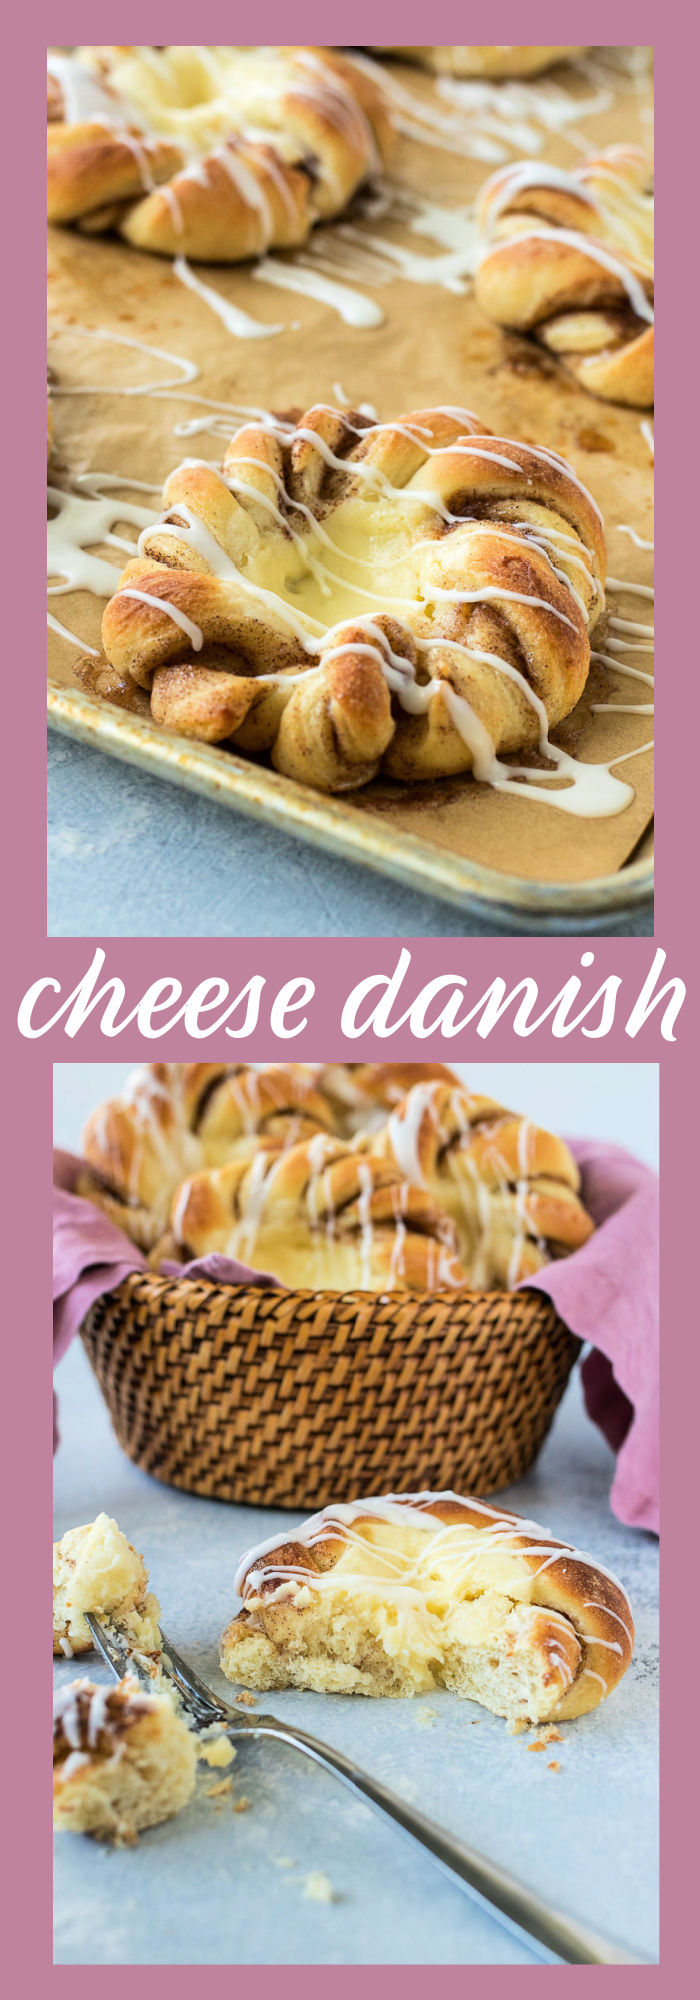 collage photo of cheese danish with descriptive text